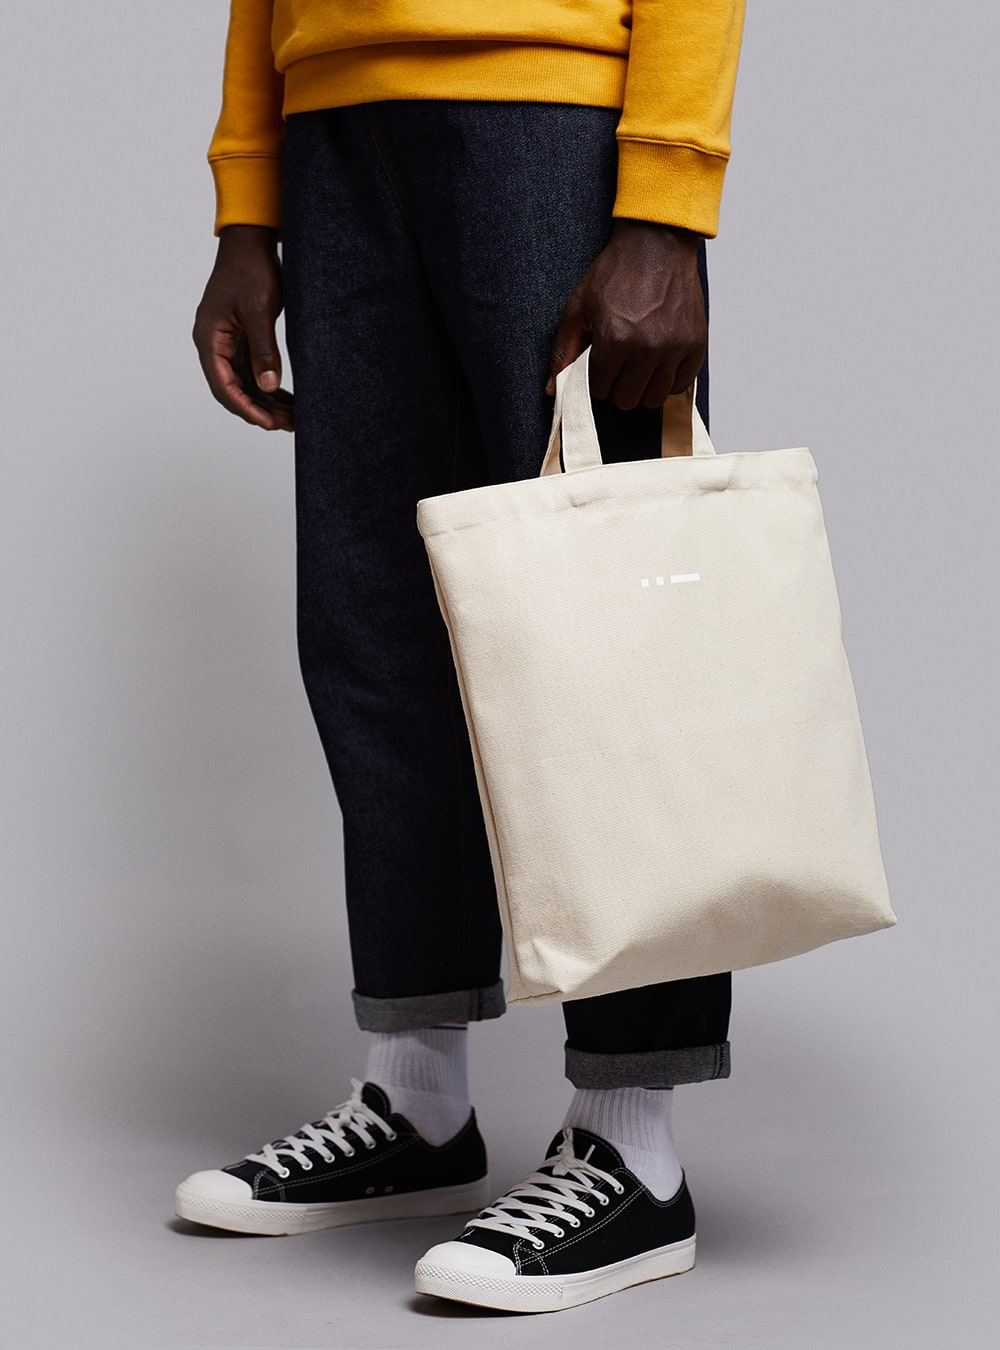 Shopper bag (warm white) in cotton, made in Portugal by wetheknot.